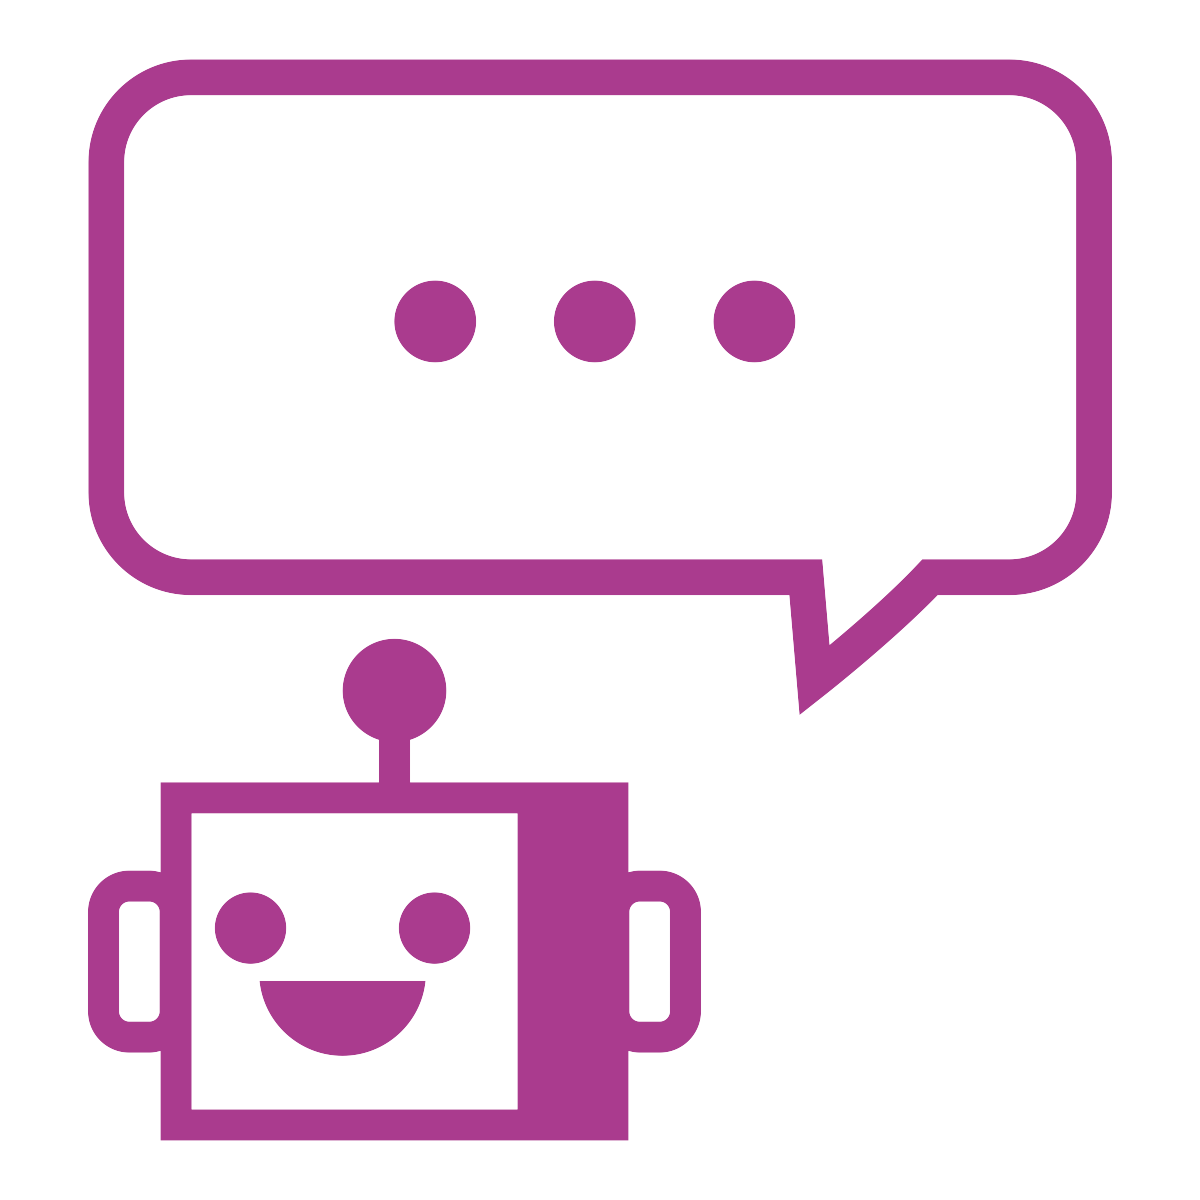 Quirky robot head with chat bubble that has three dots in it